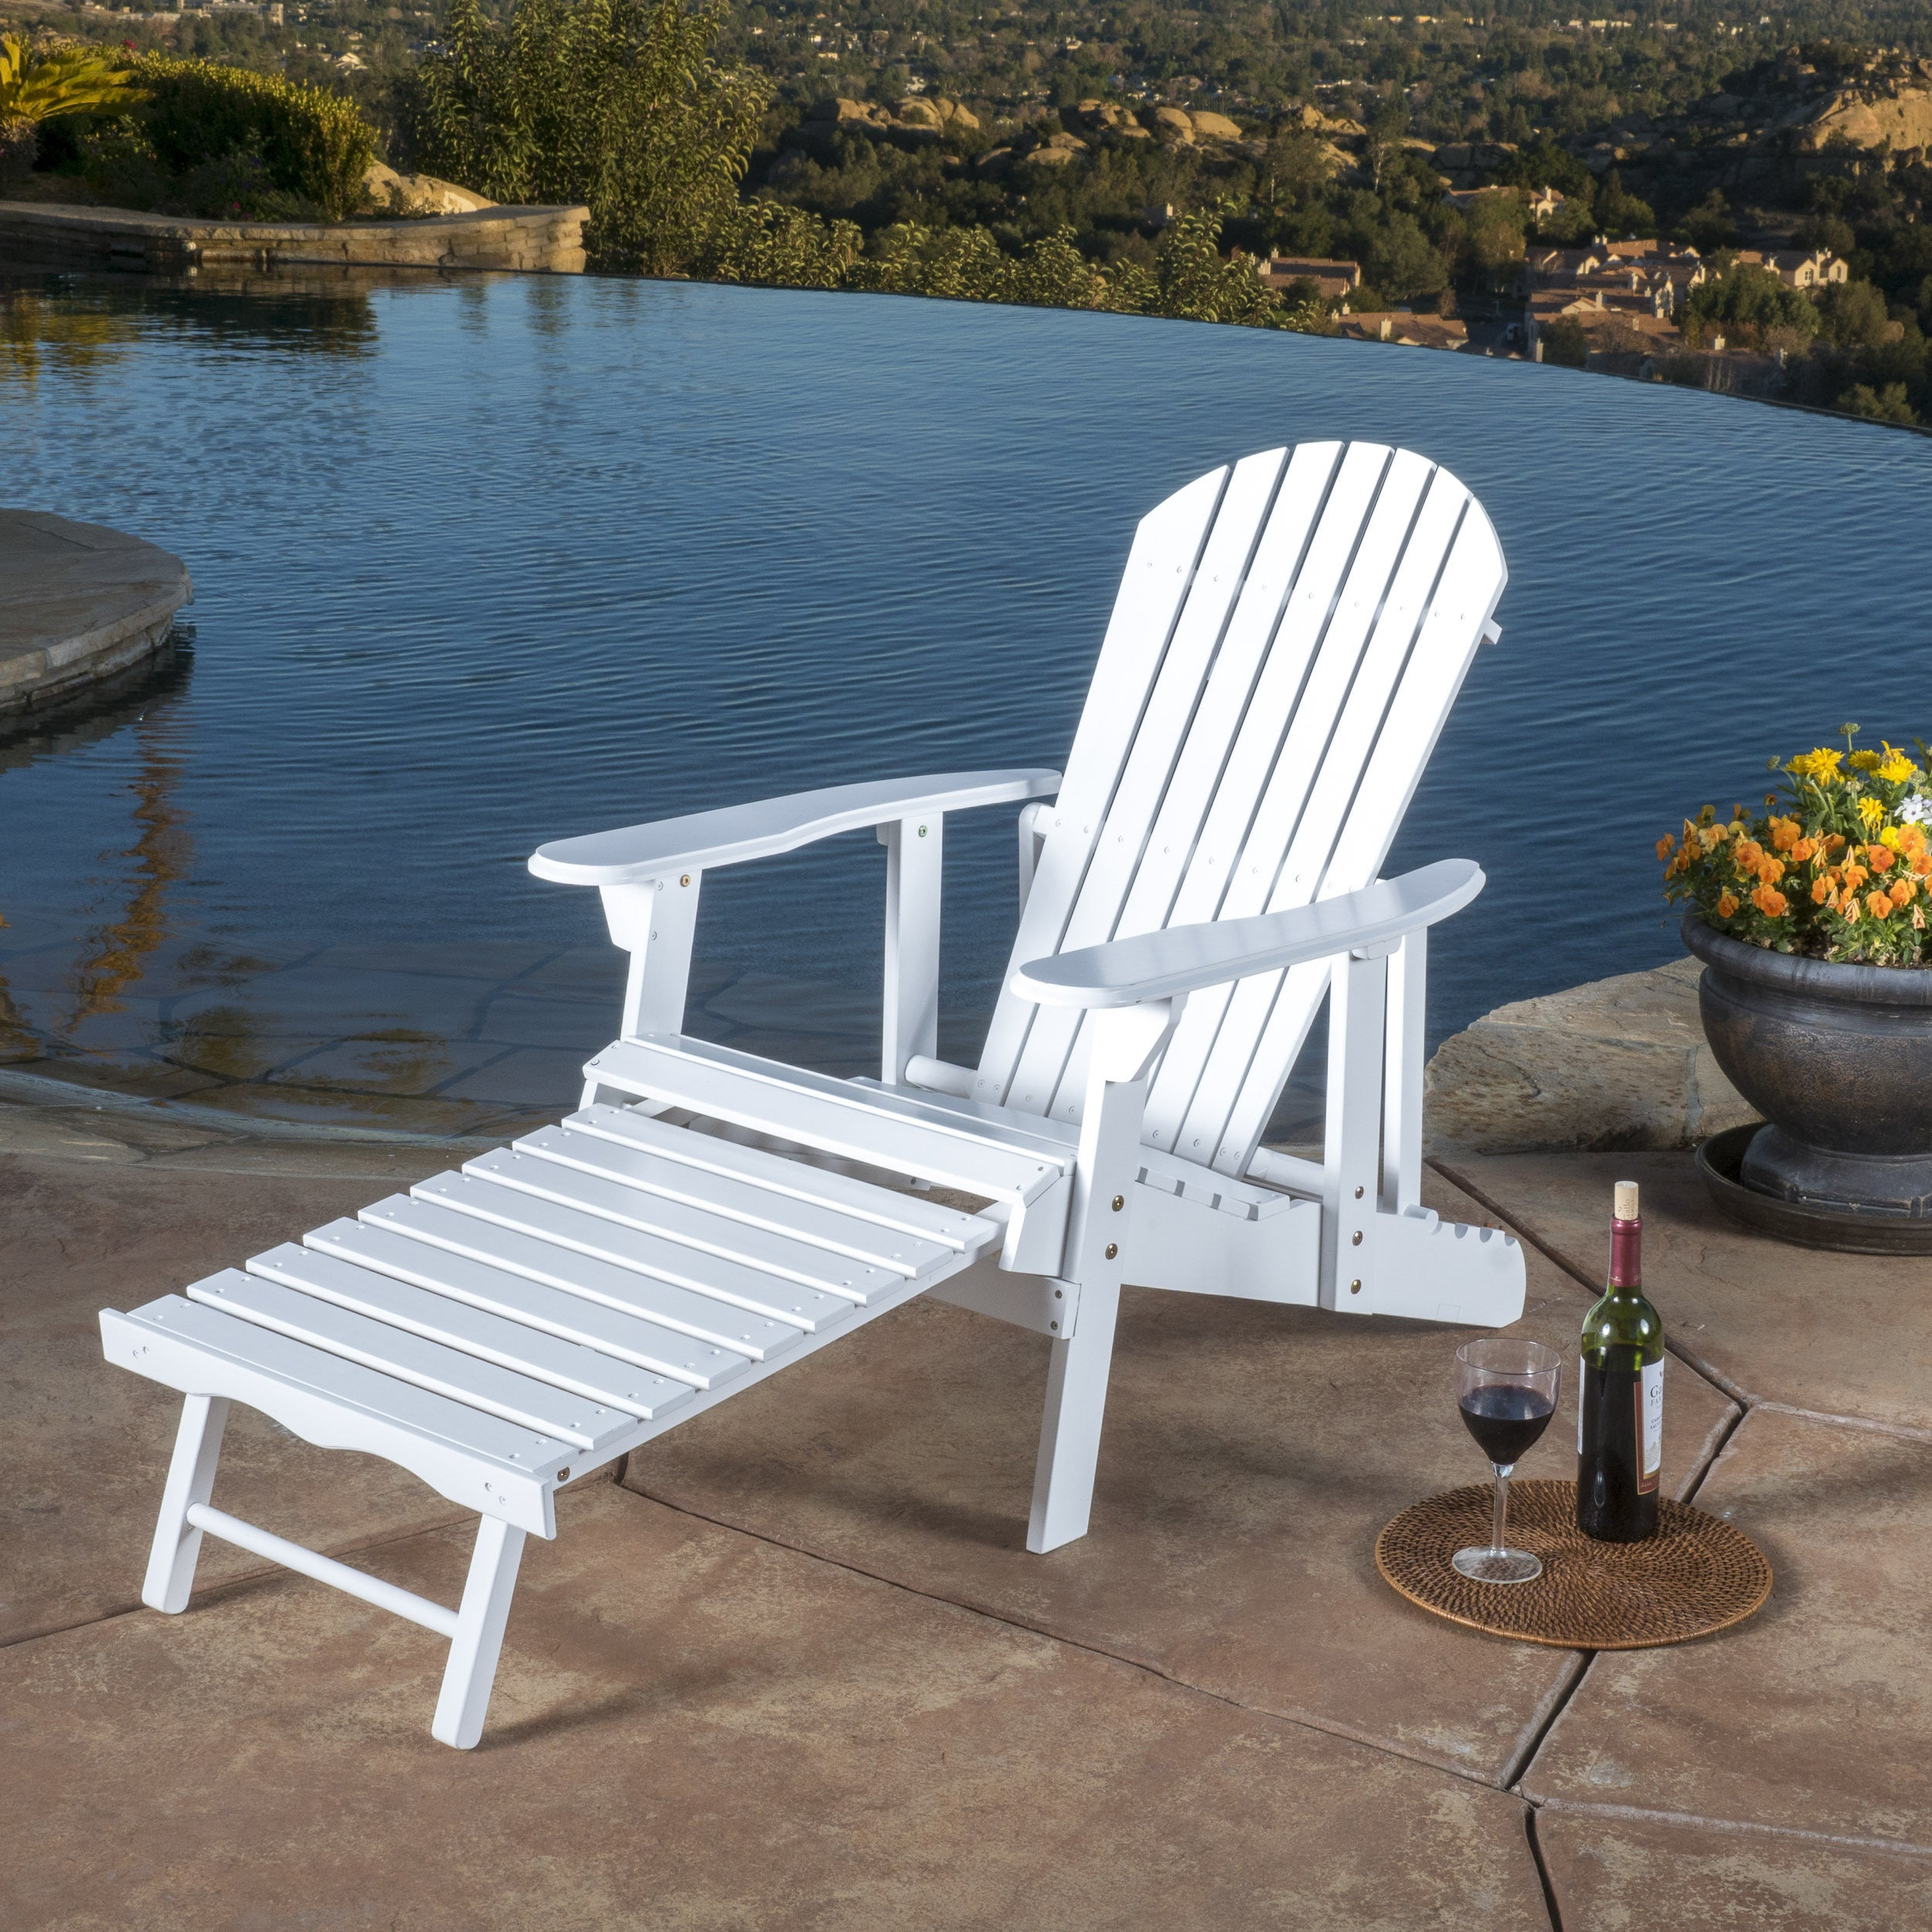 Hayle Outdoor Reclining Wood Adirondack Chair with Footre...